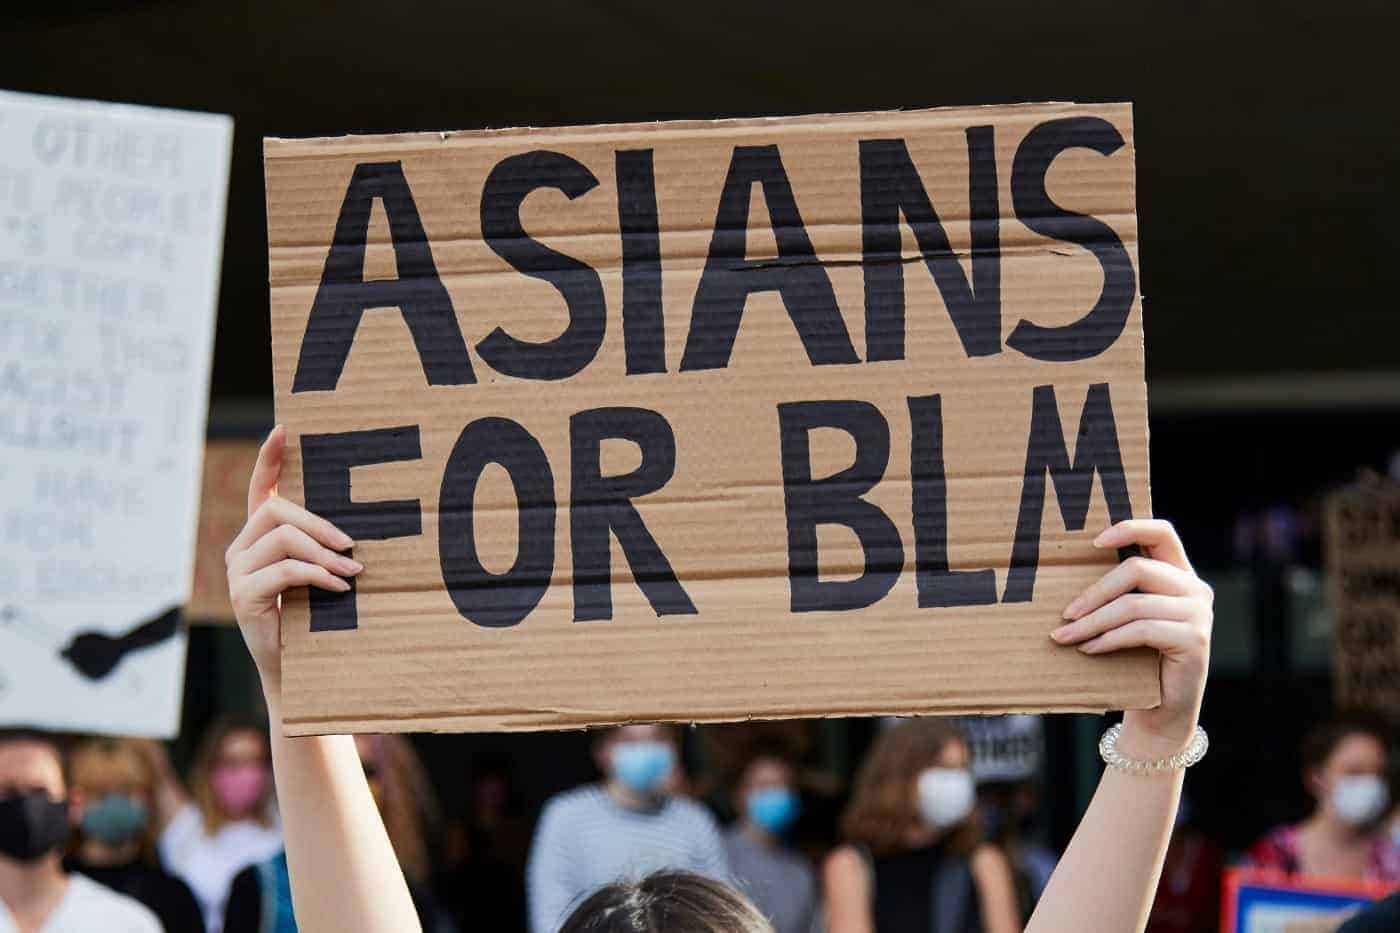 A protest sign that says Asians for BLM